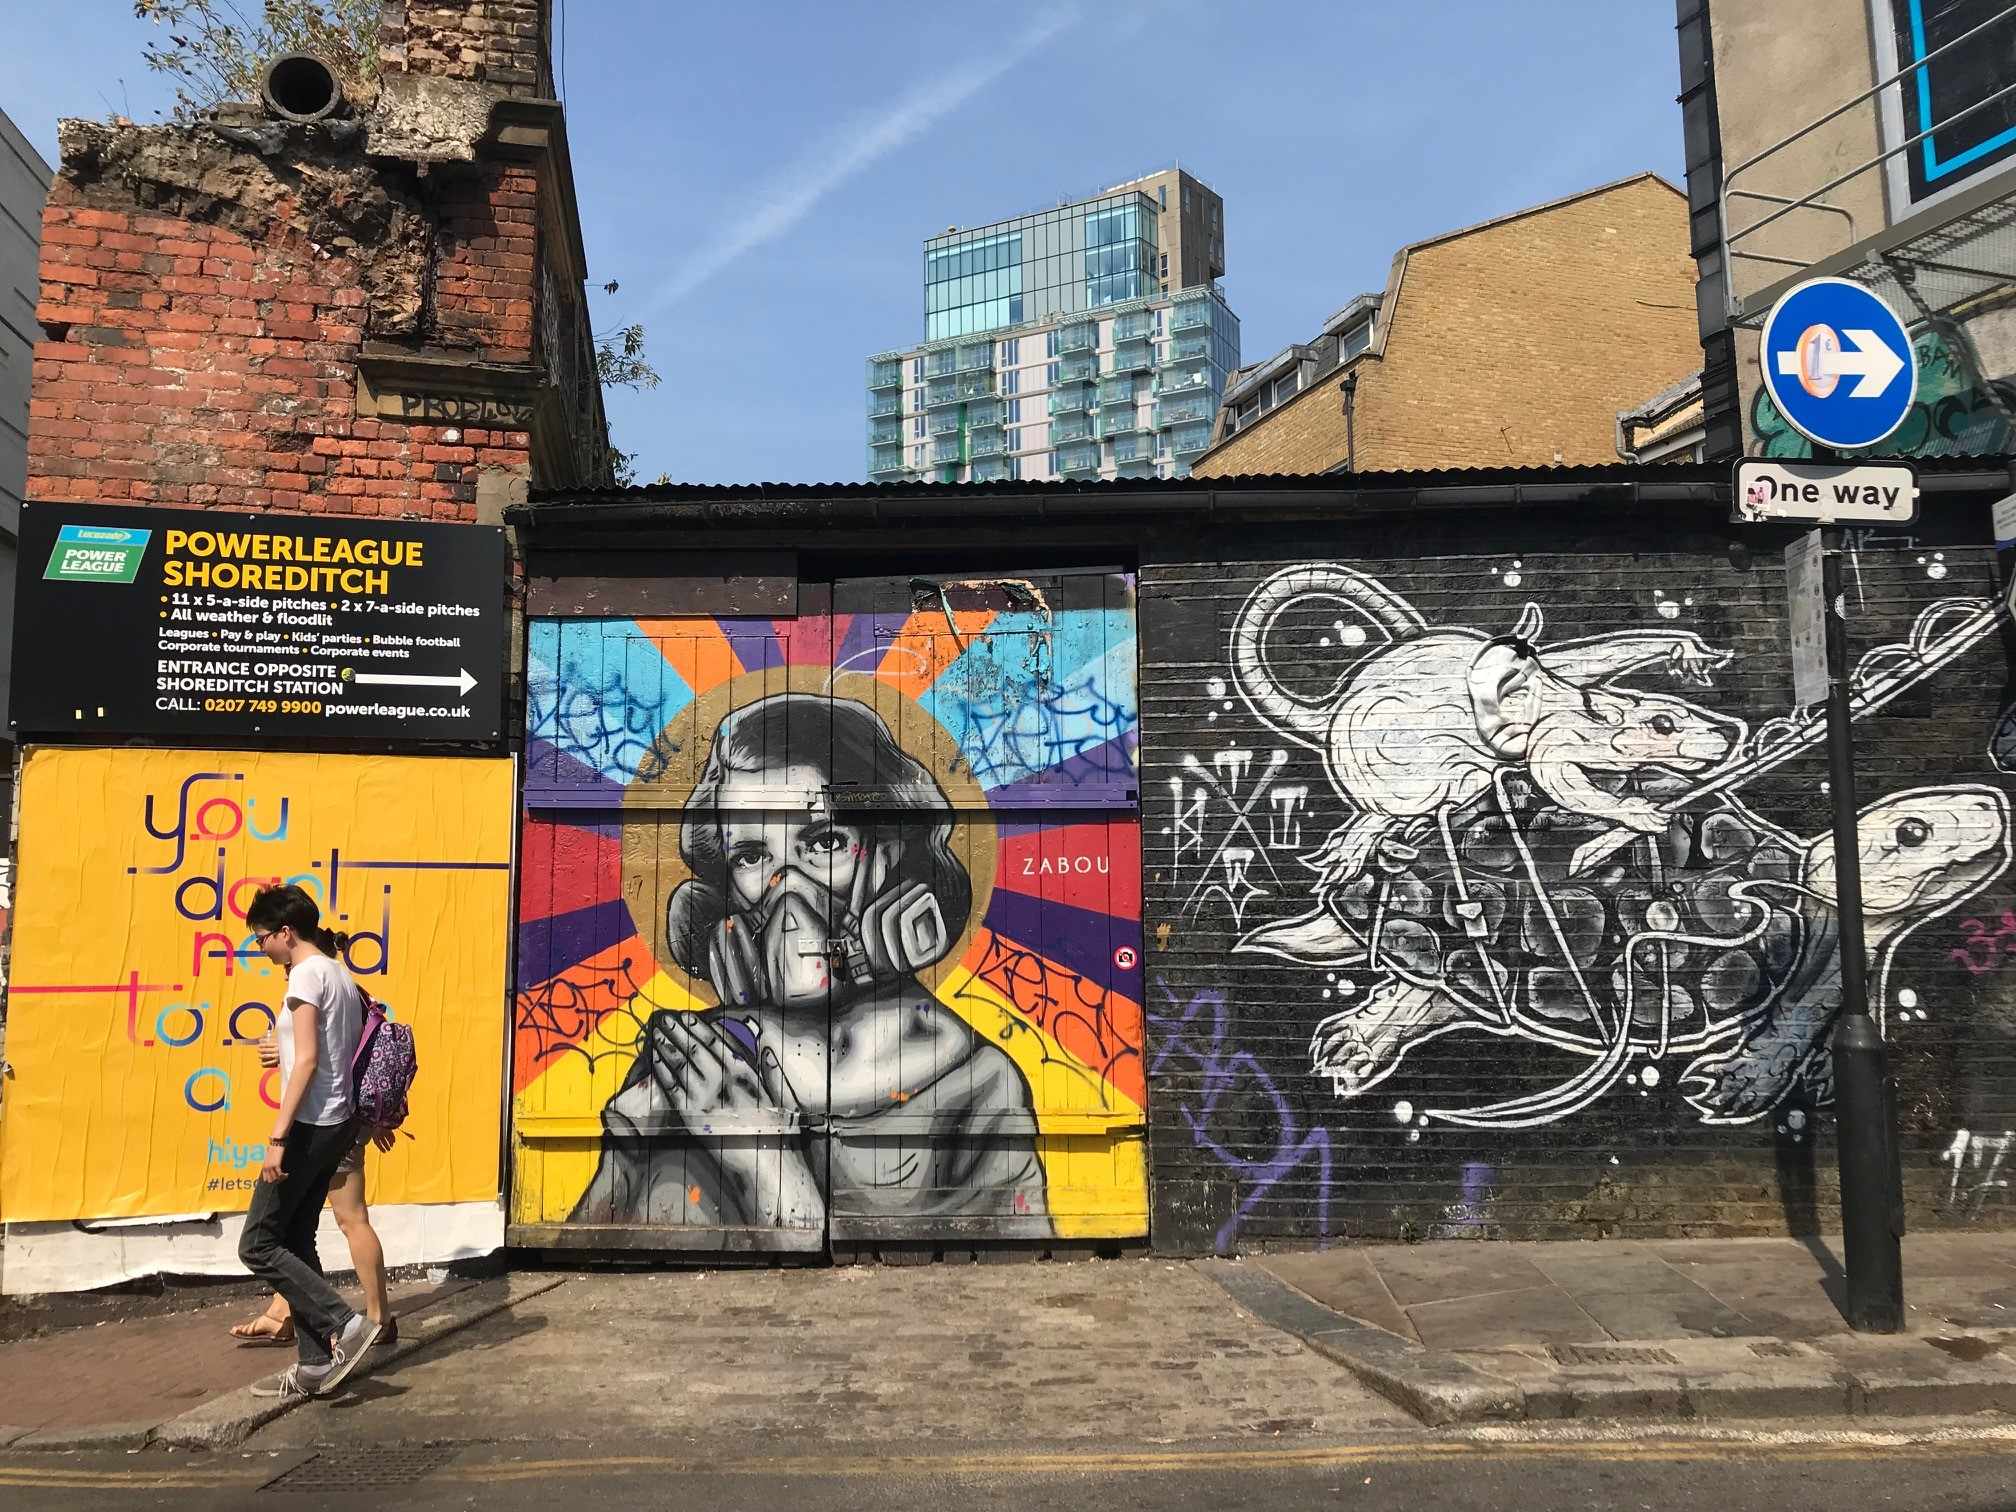 Brick Lane Photo